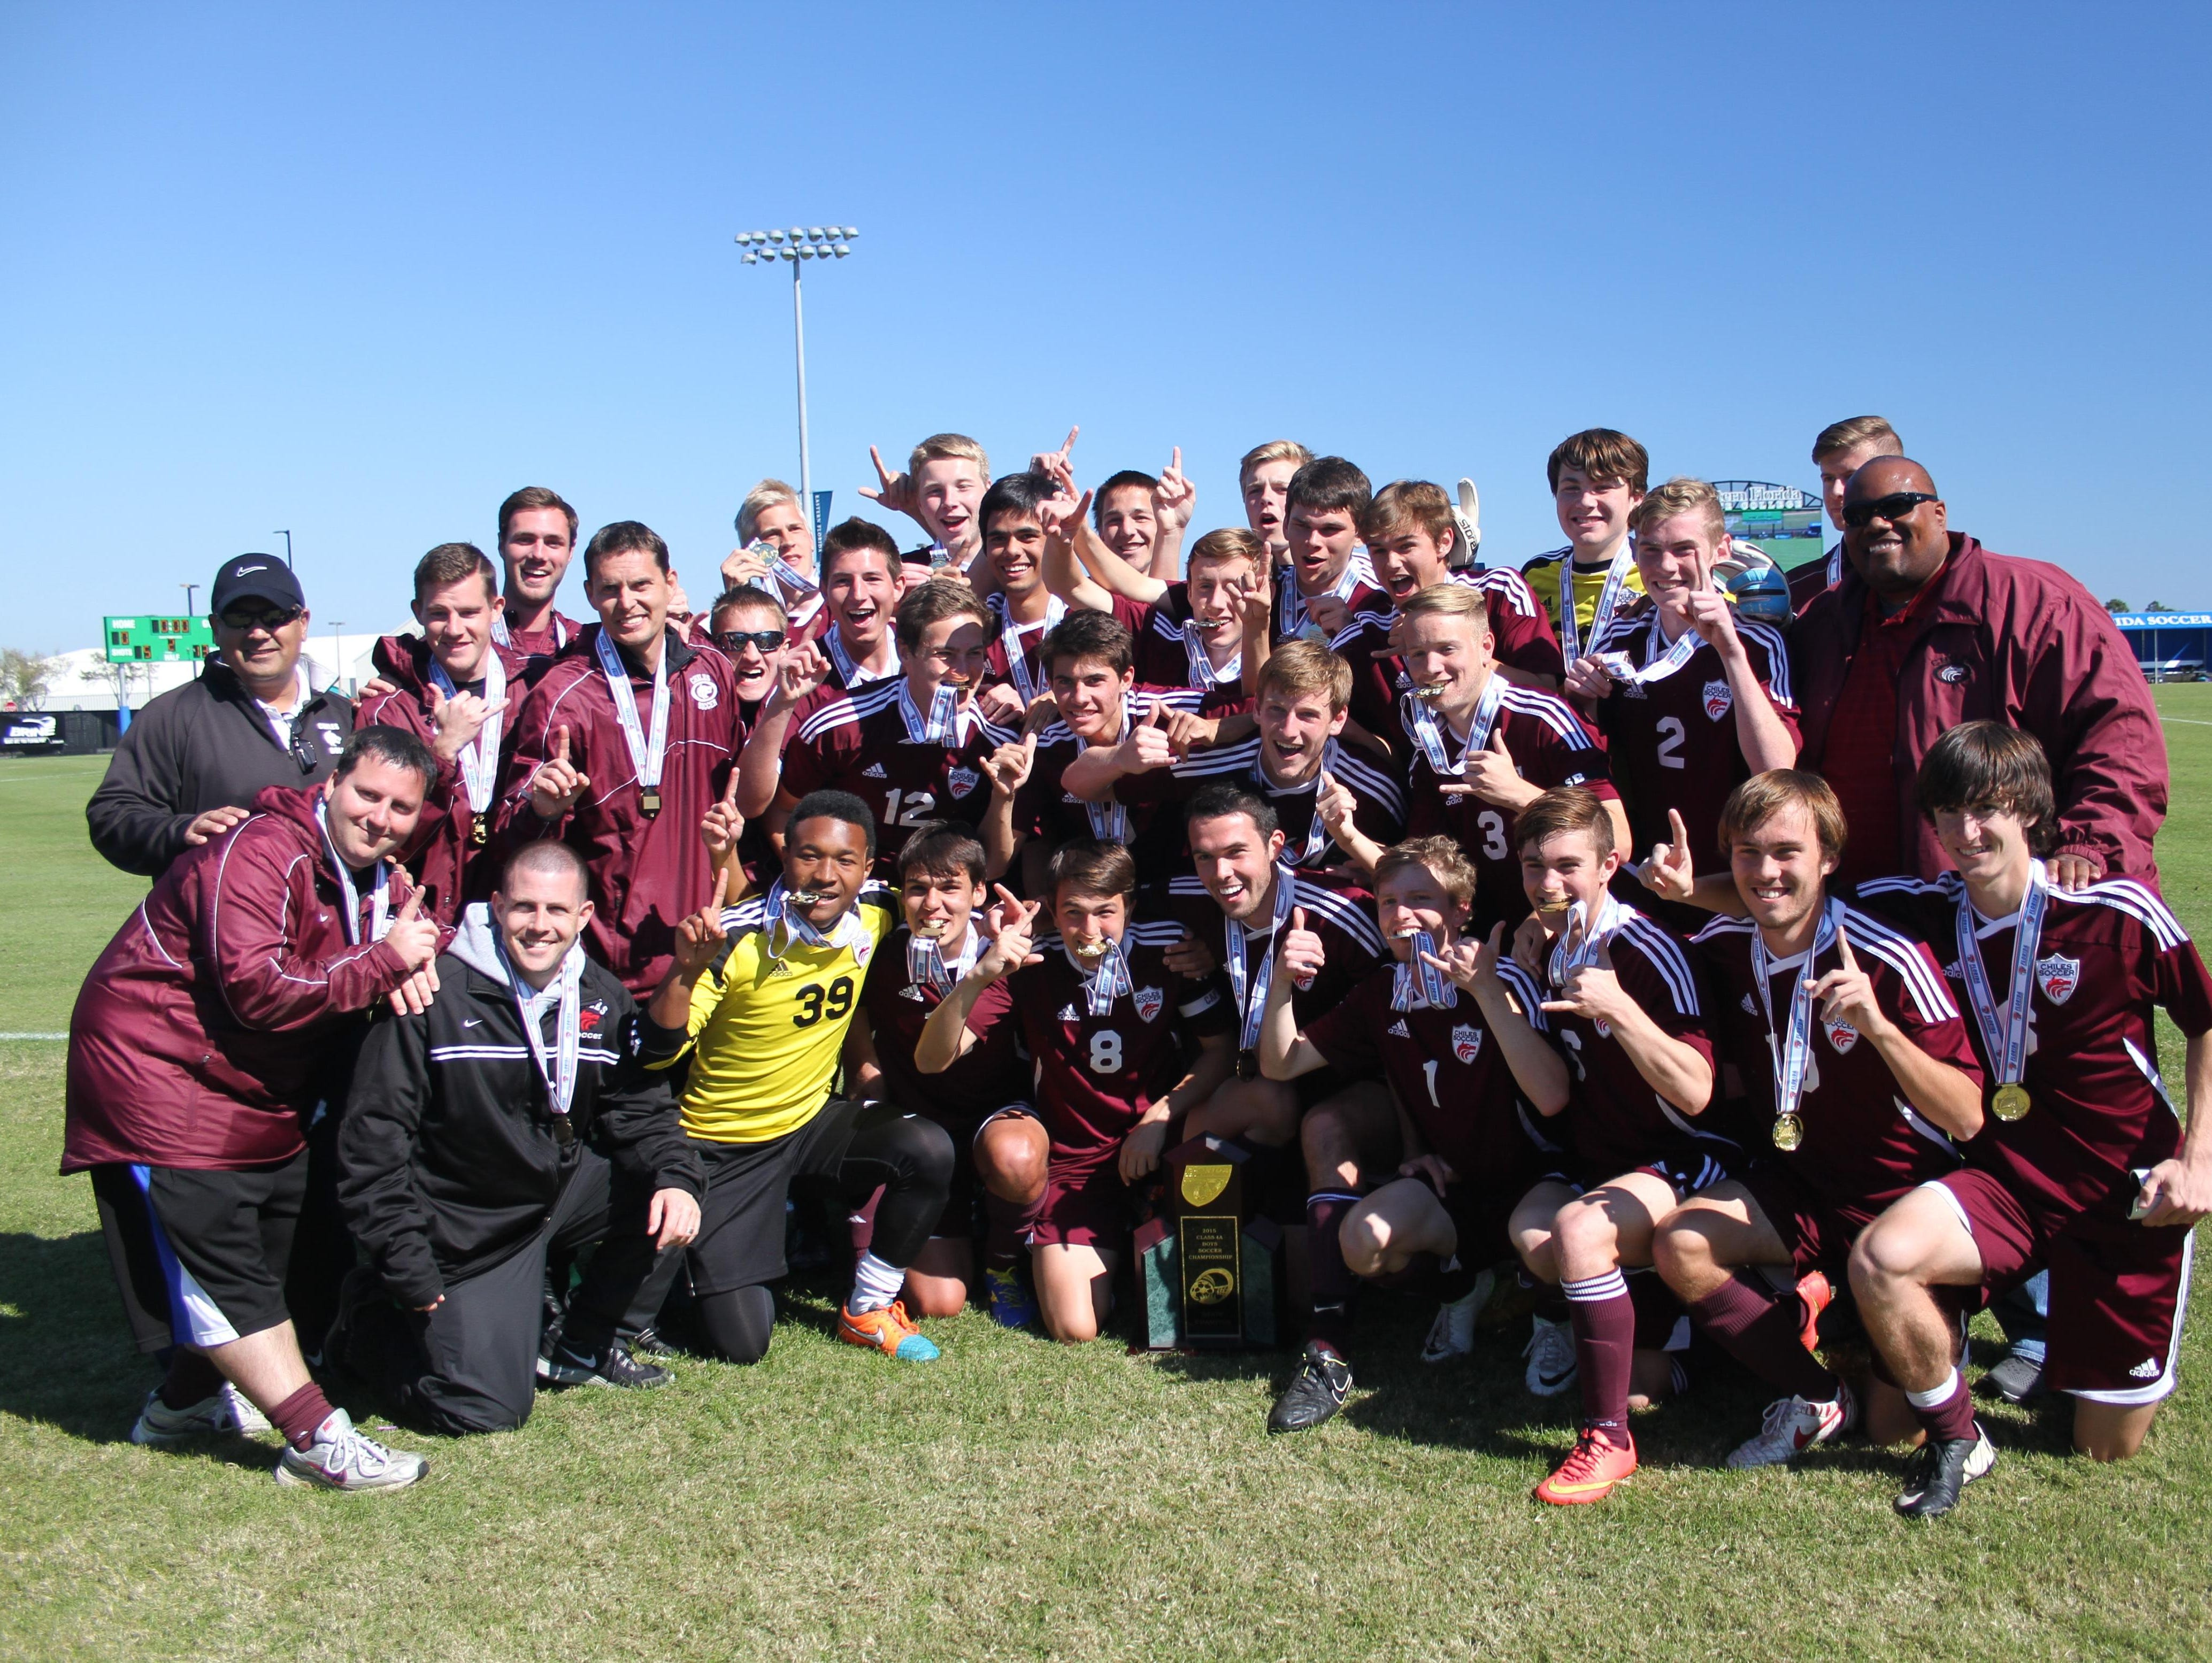 The Chiles boys soccer team went 29-3 and won a 3A state title, while also ending the season ranked No. 7 in the entire nation. The Timberwolves lost 14 seniors off that team and return just two starters for this year's team.